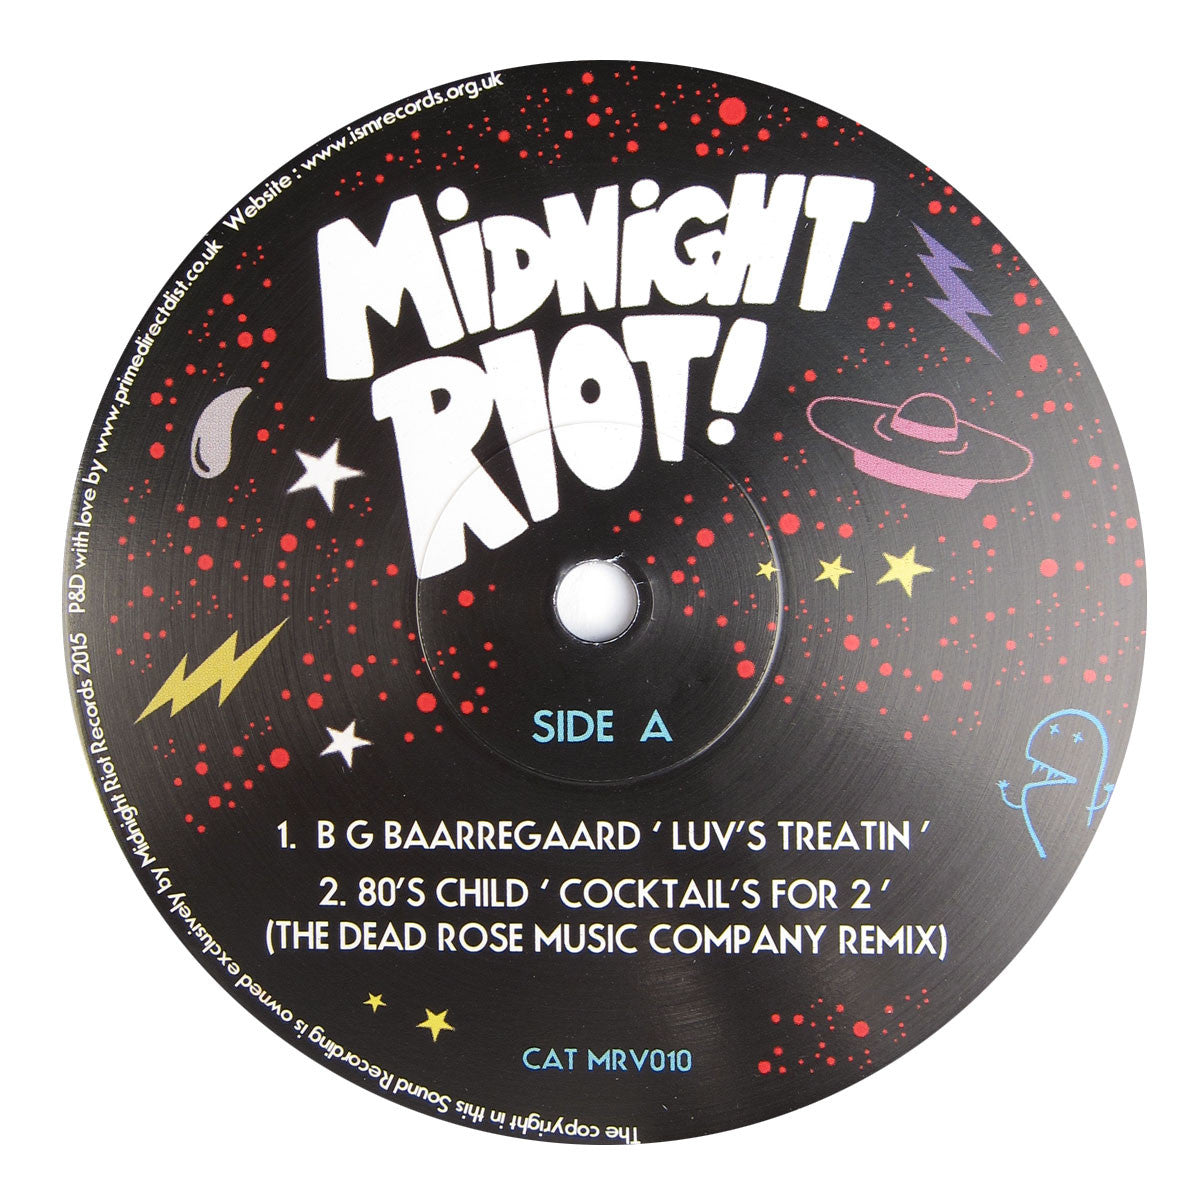 Midnight Riot: Midnight Riot Vol.8 (Late Nite Tuff Guy) Vinyl 12""